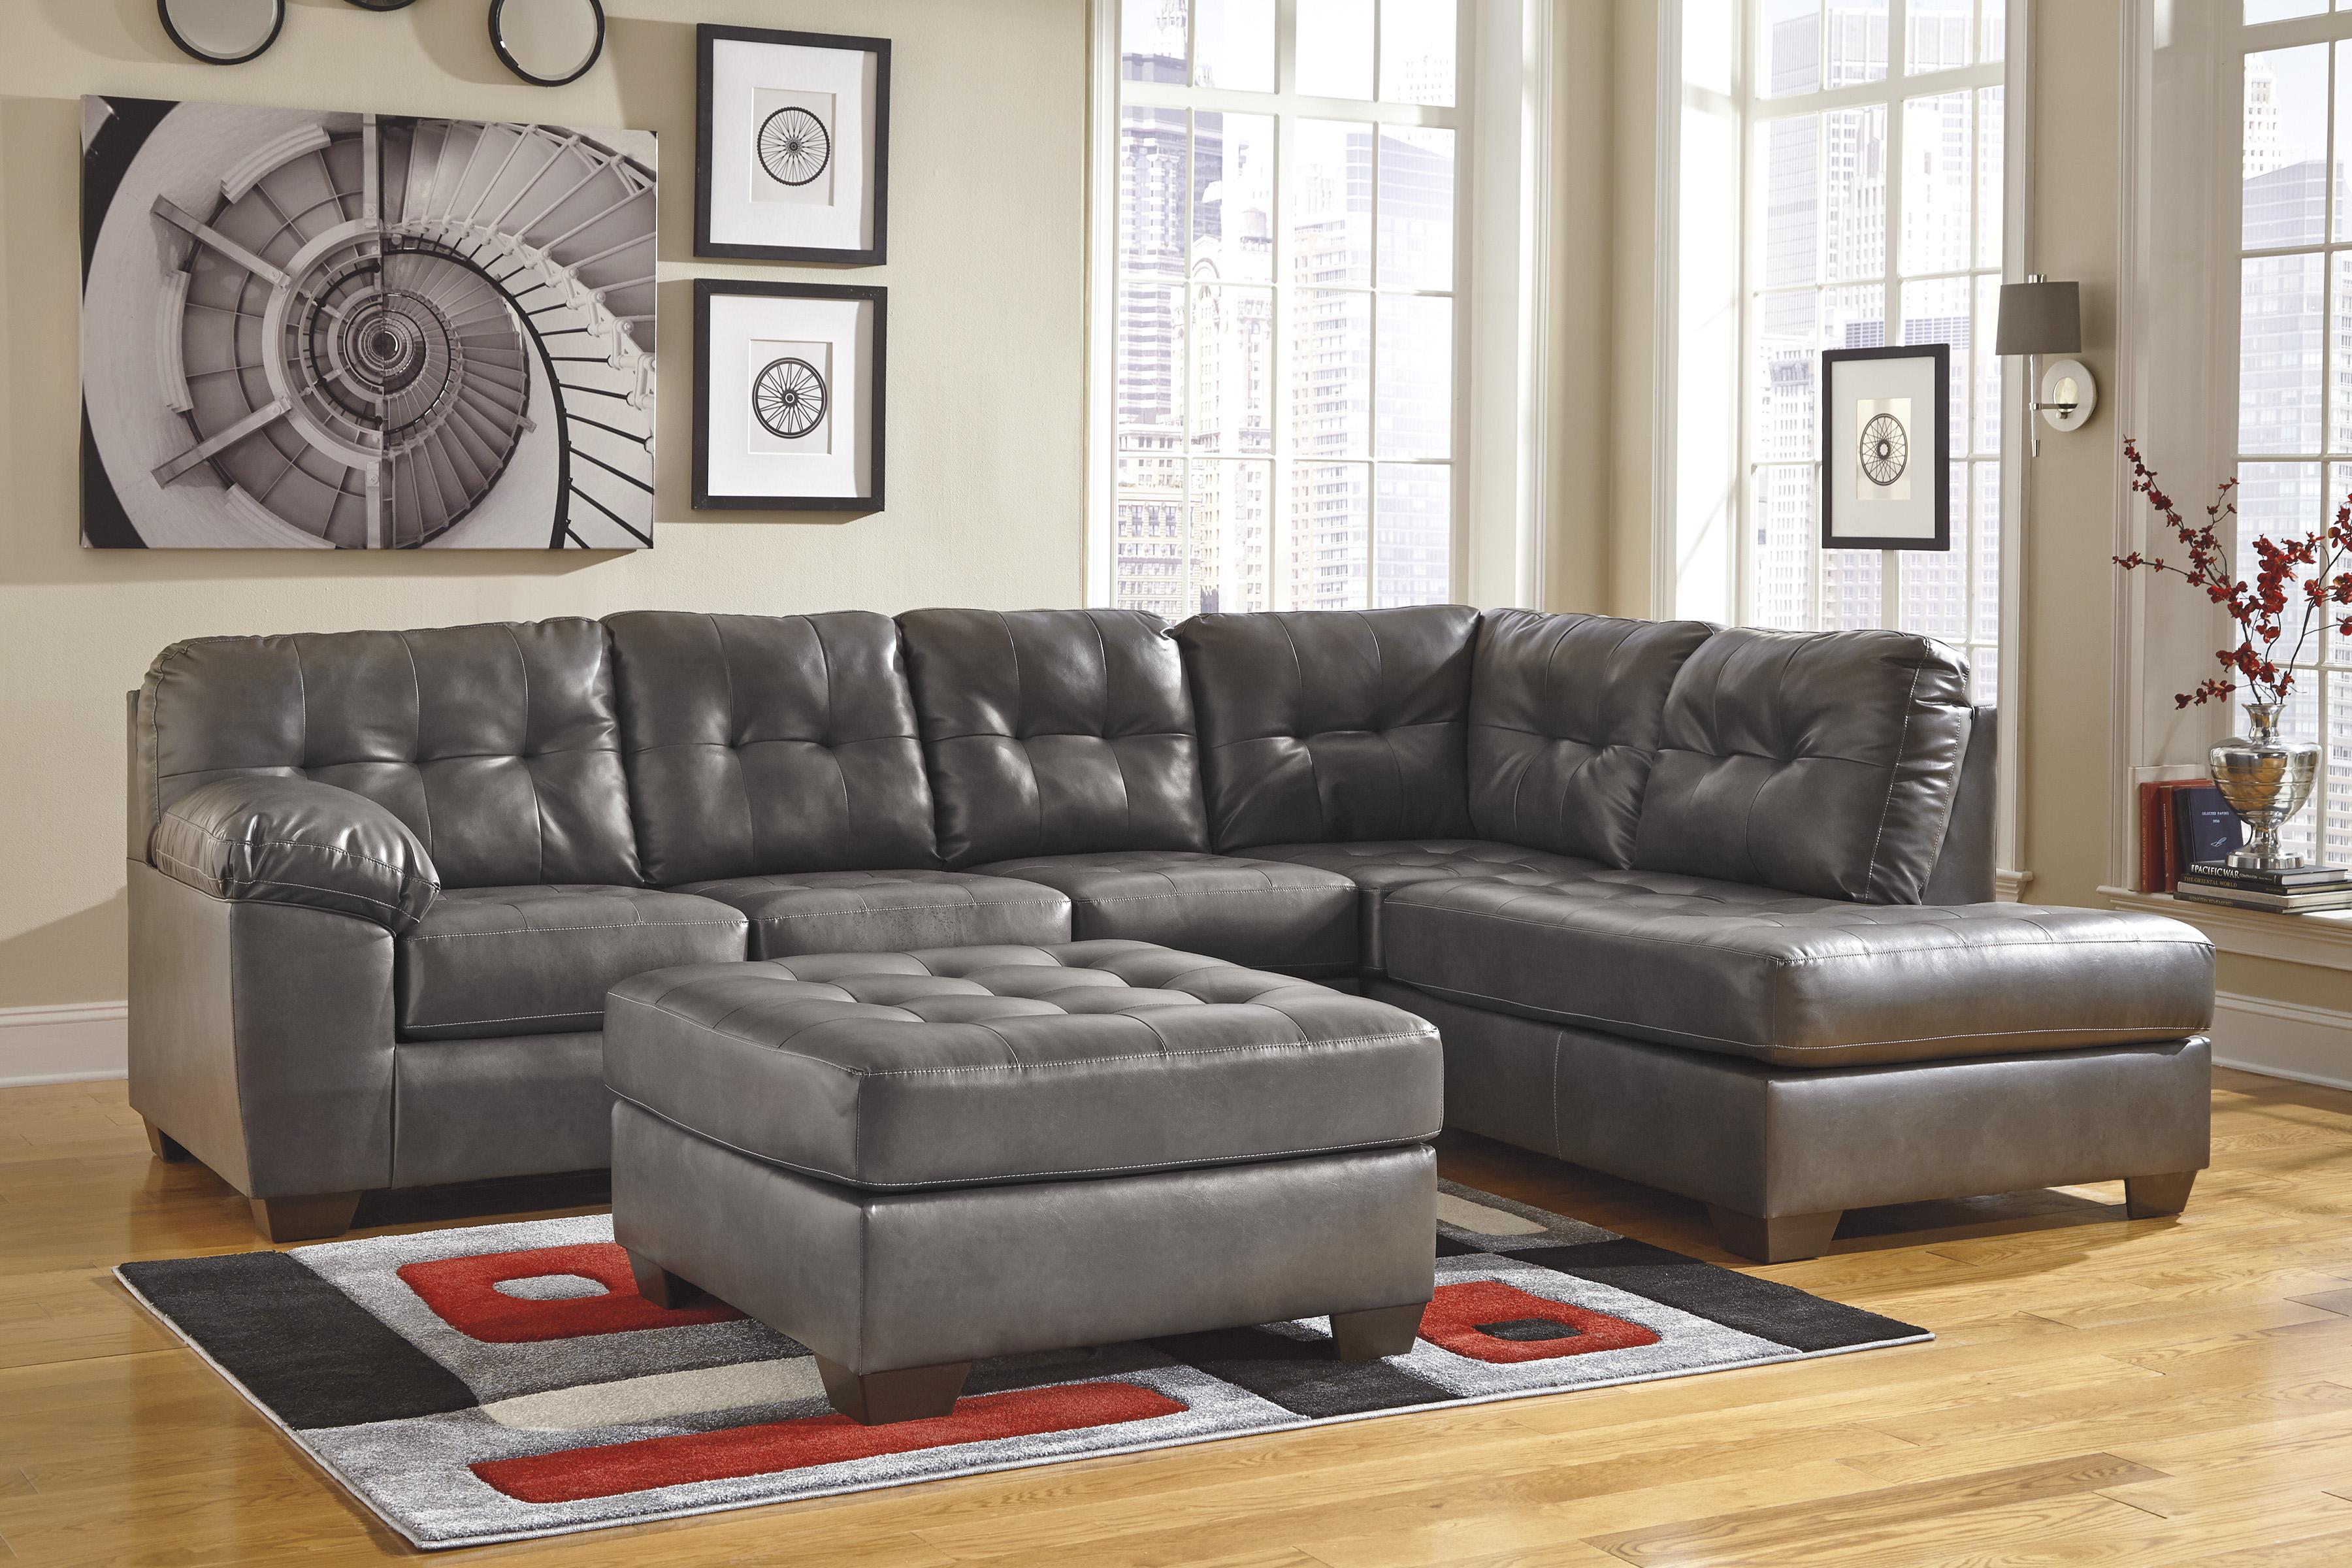 Faux leather sectional w right chaise tufting by for Ashley furniture chaise lounge couch